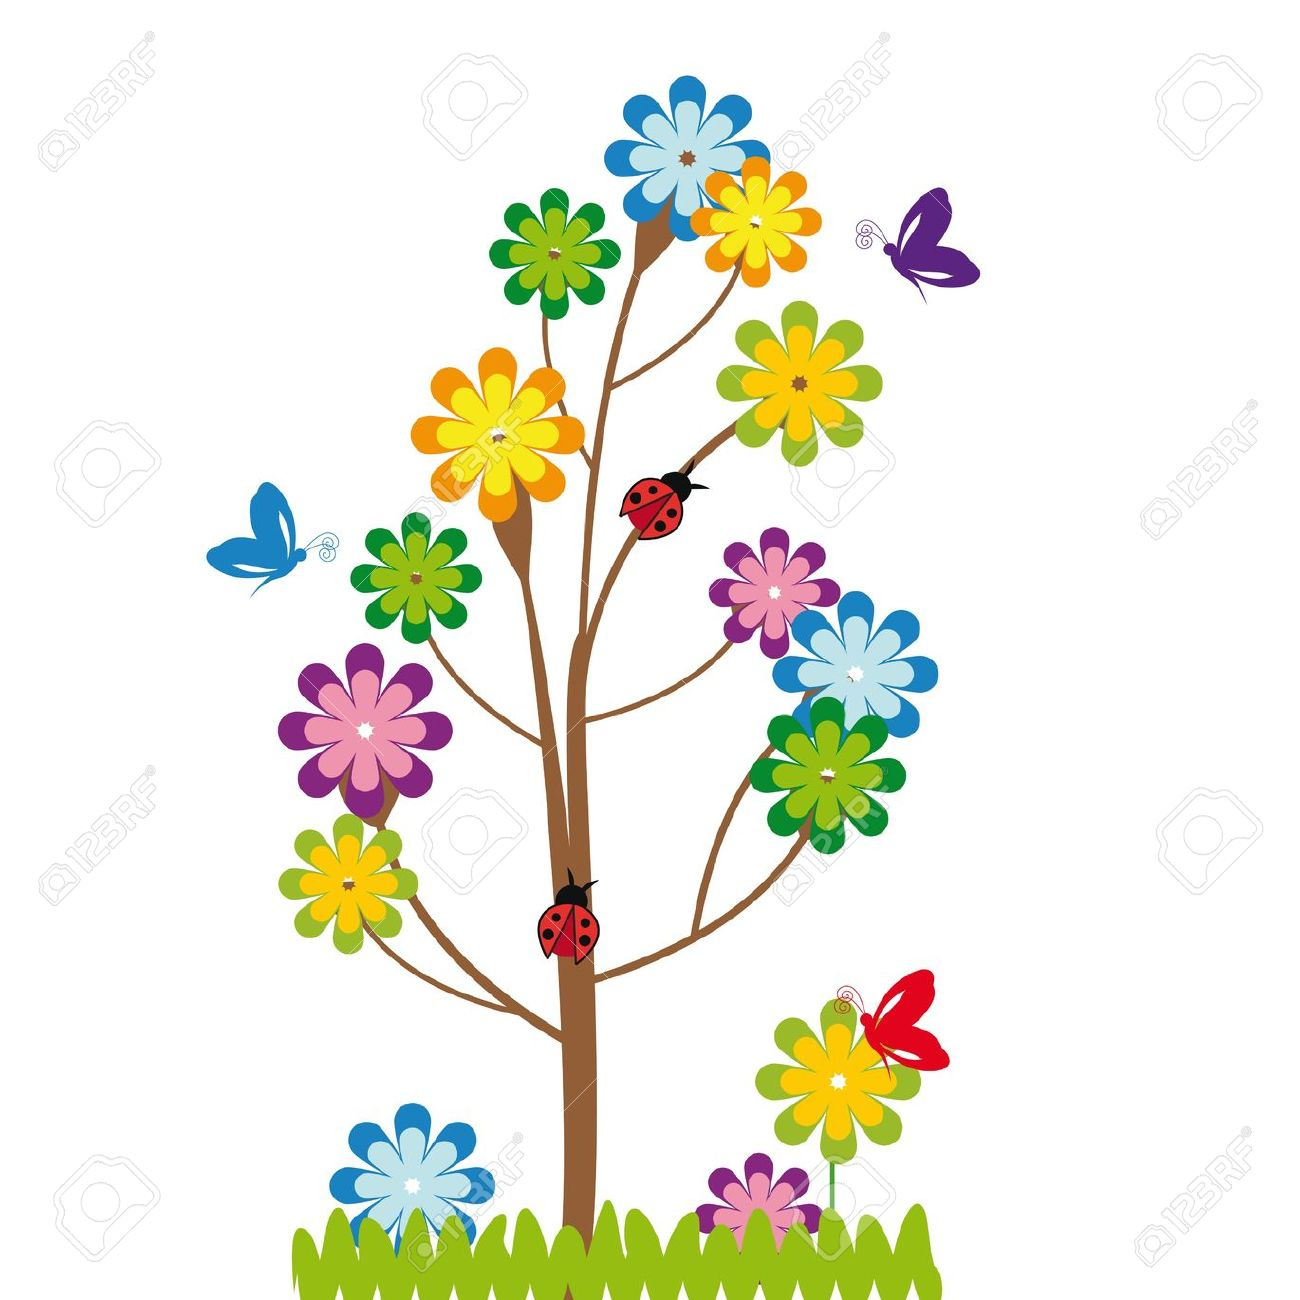 Trees flowers animals butterflies insects clipart for kids.